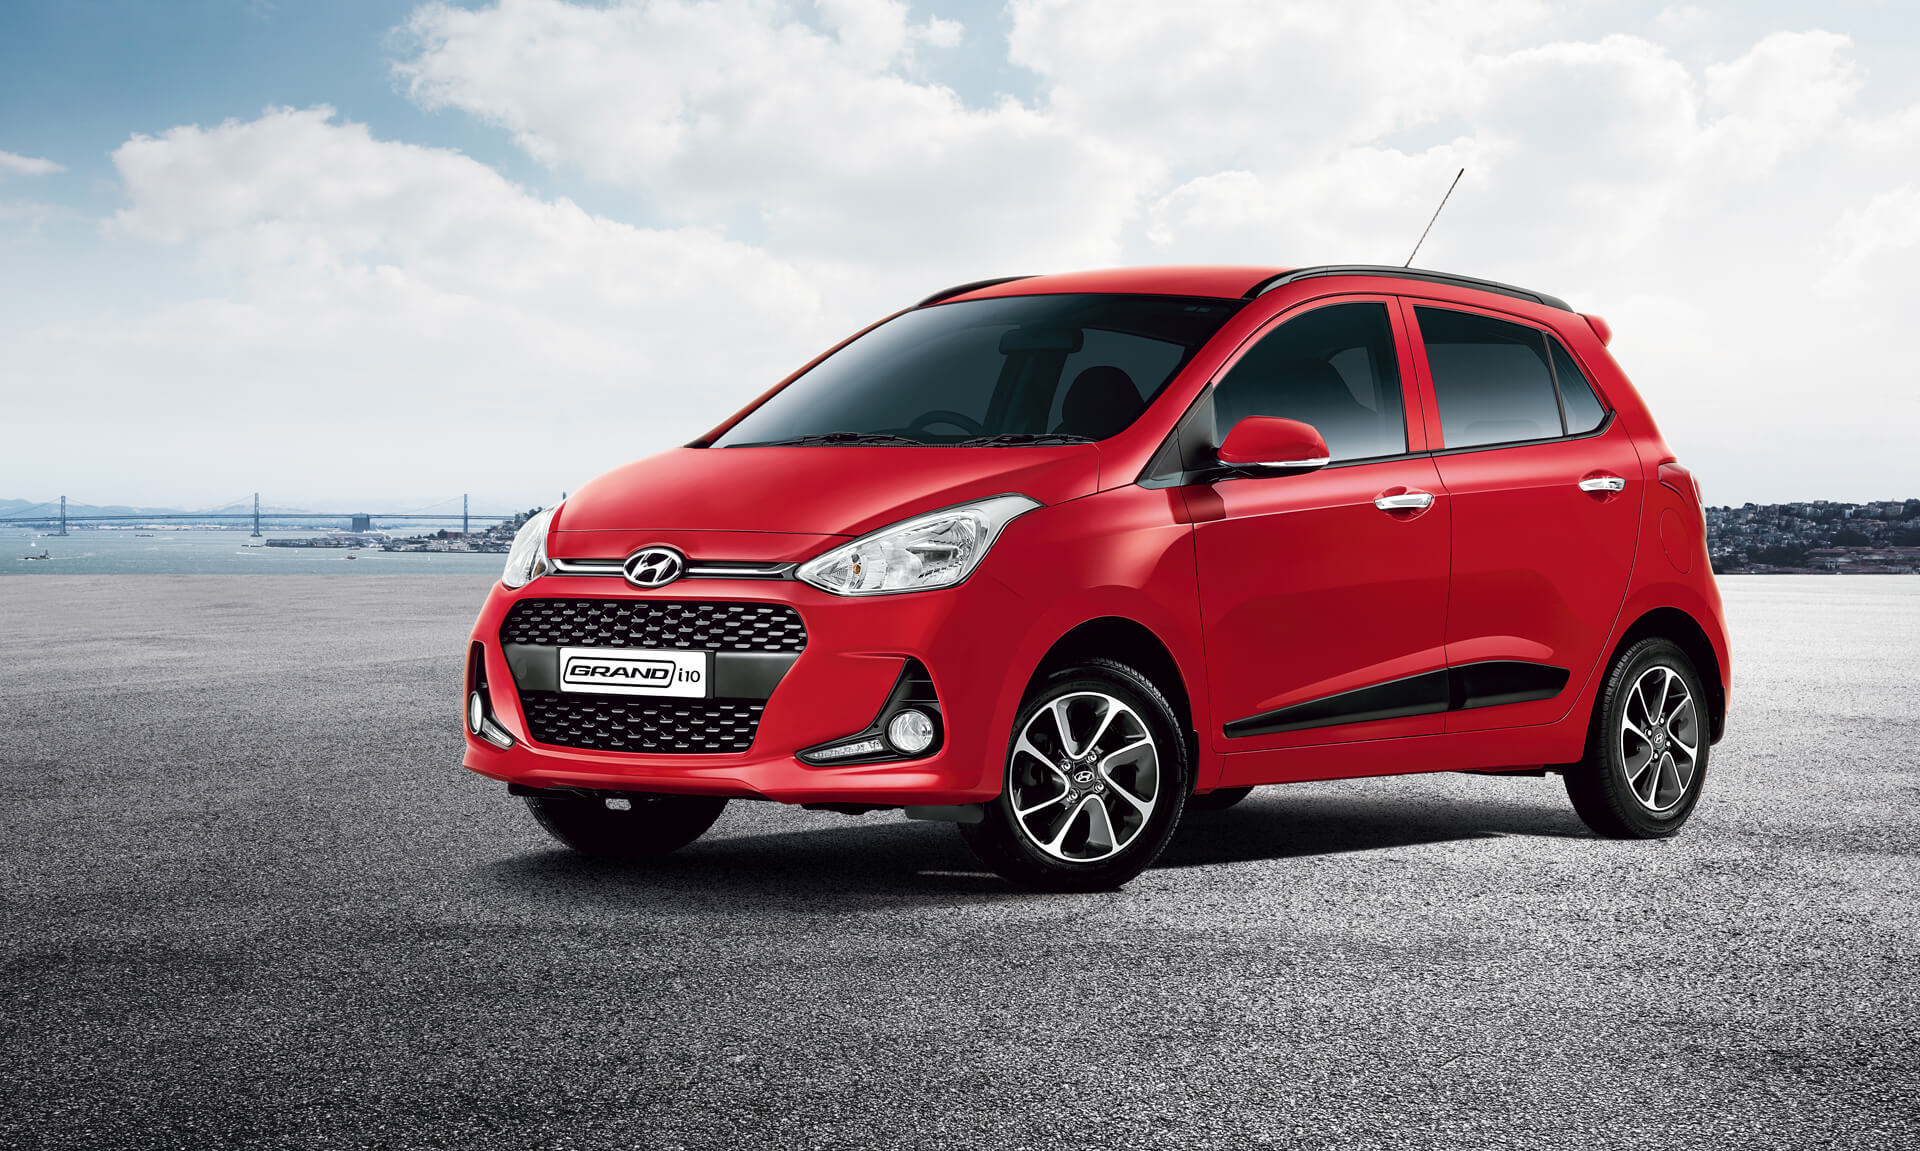 Hyundai Grand i10 Dealer Mumbai, Thane - Shreenath Hyundai